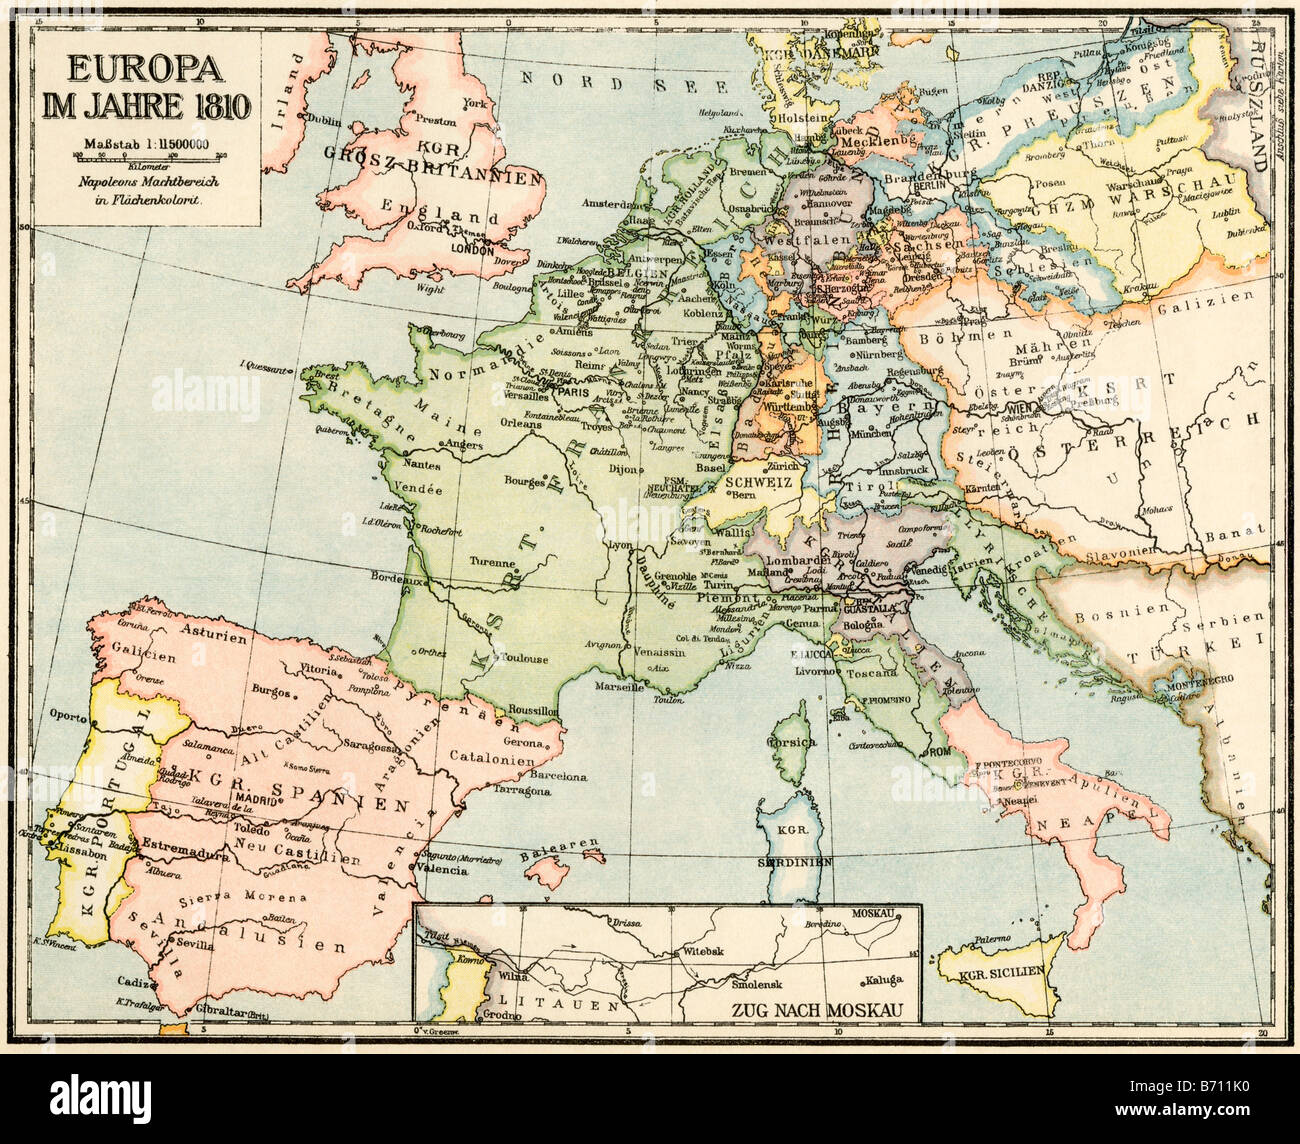 current european map, current physical map of europe, current map of southern europe, current map of western europe, on current map of europe in german